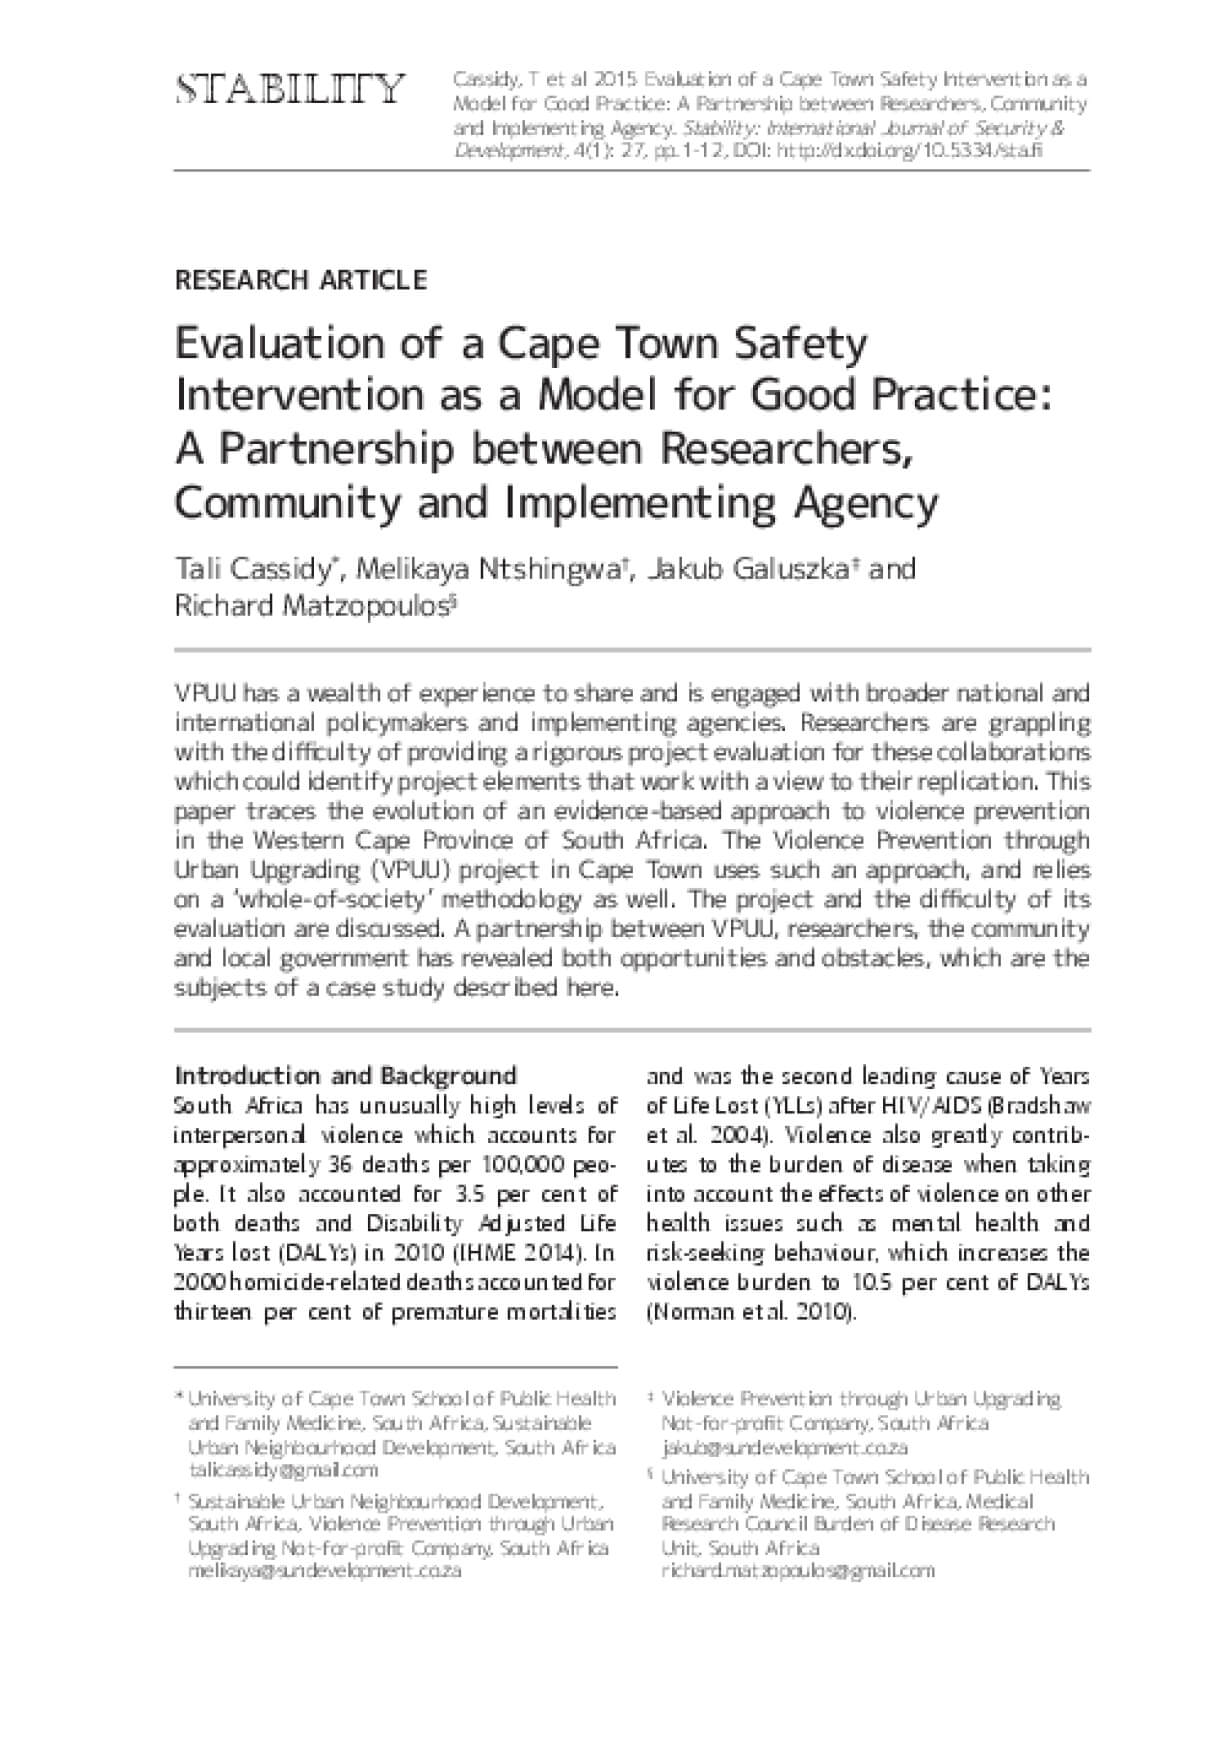 Evaluation of a Cape Town Safety Intervention as a Model for Good Practice: A Partnership between Researchers, Community and Implementing Agency